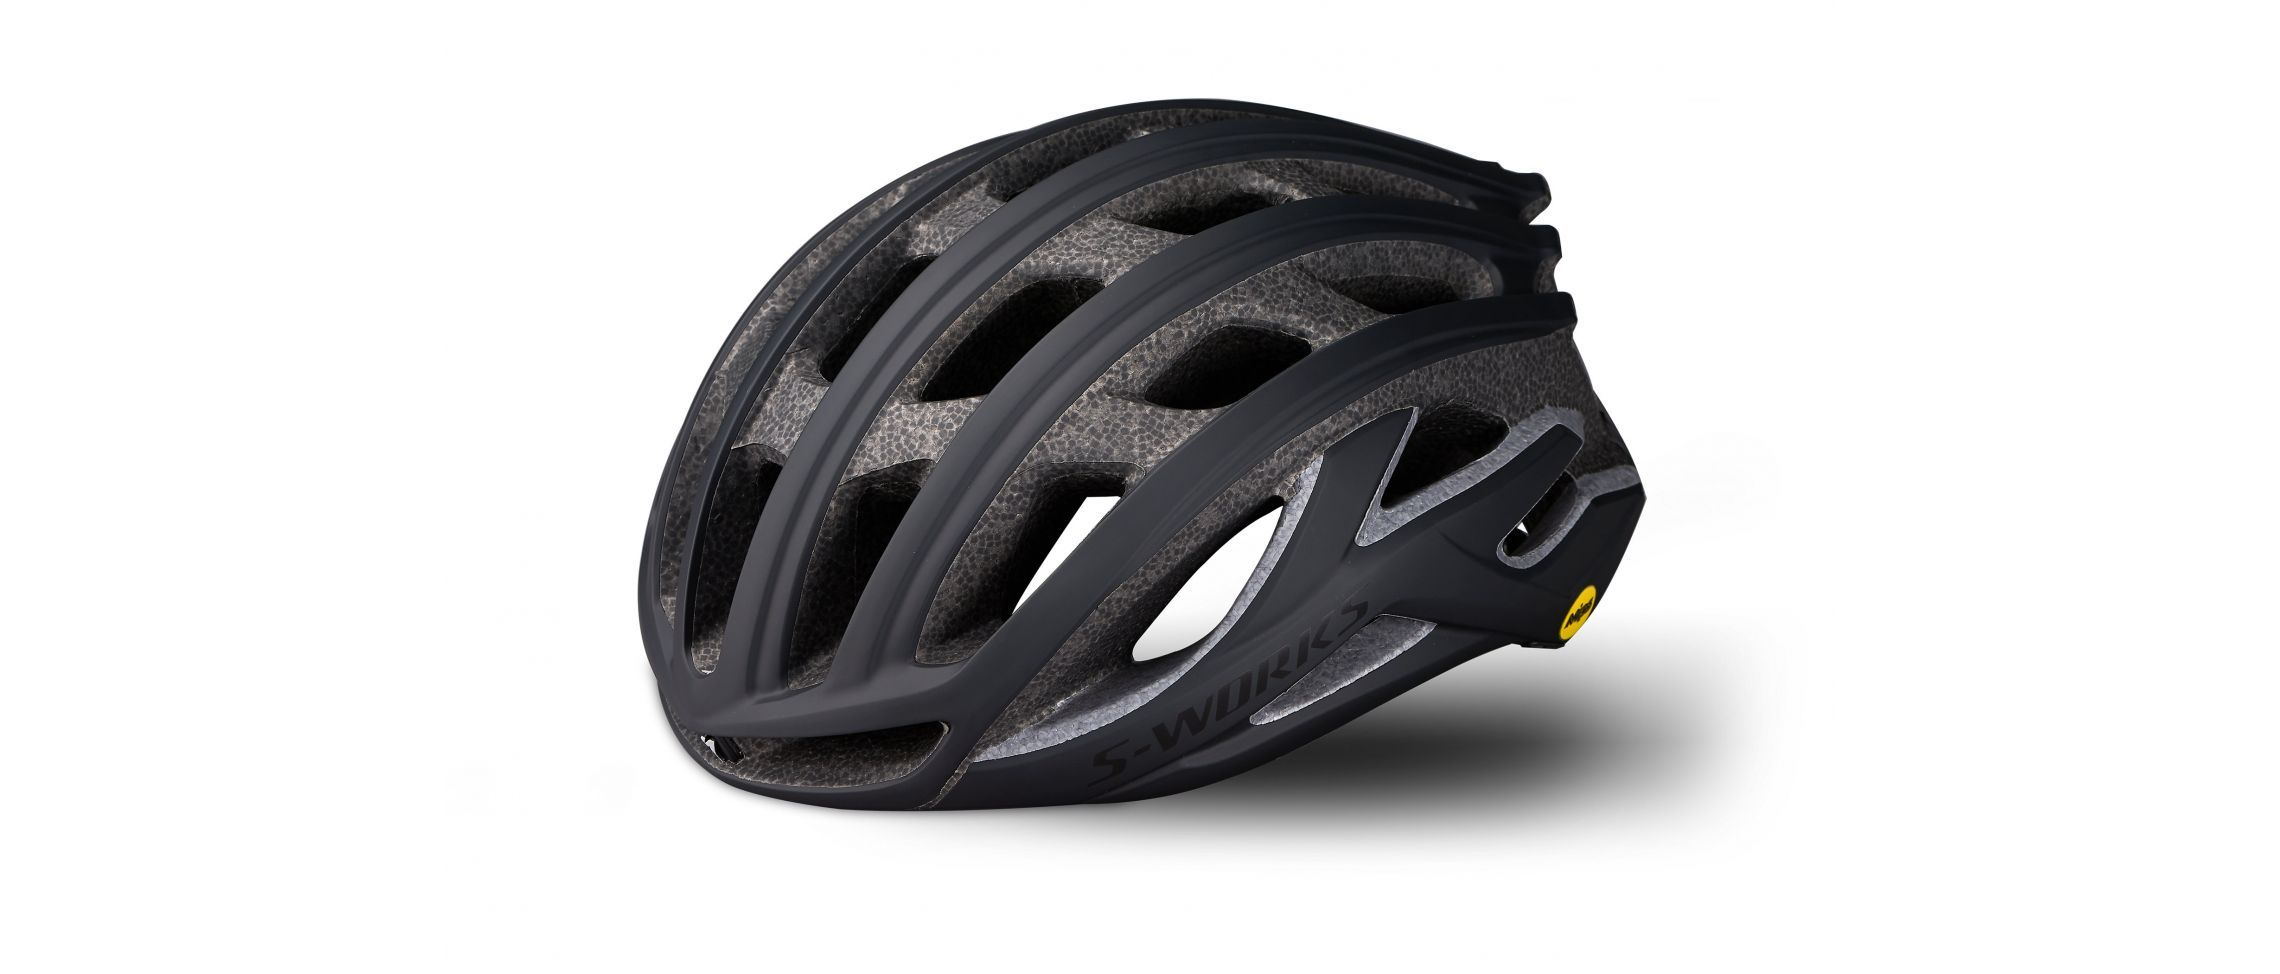 S-Works Prevail II Mips Casco Ciclismo Carretera Specialized Negro Mate 1 IBKBike.es